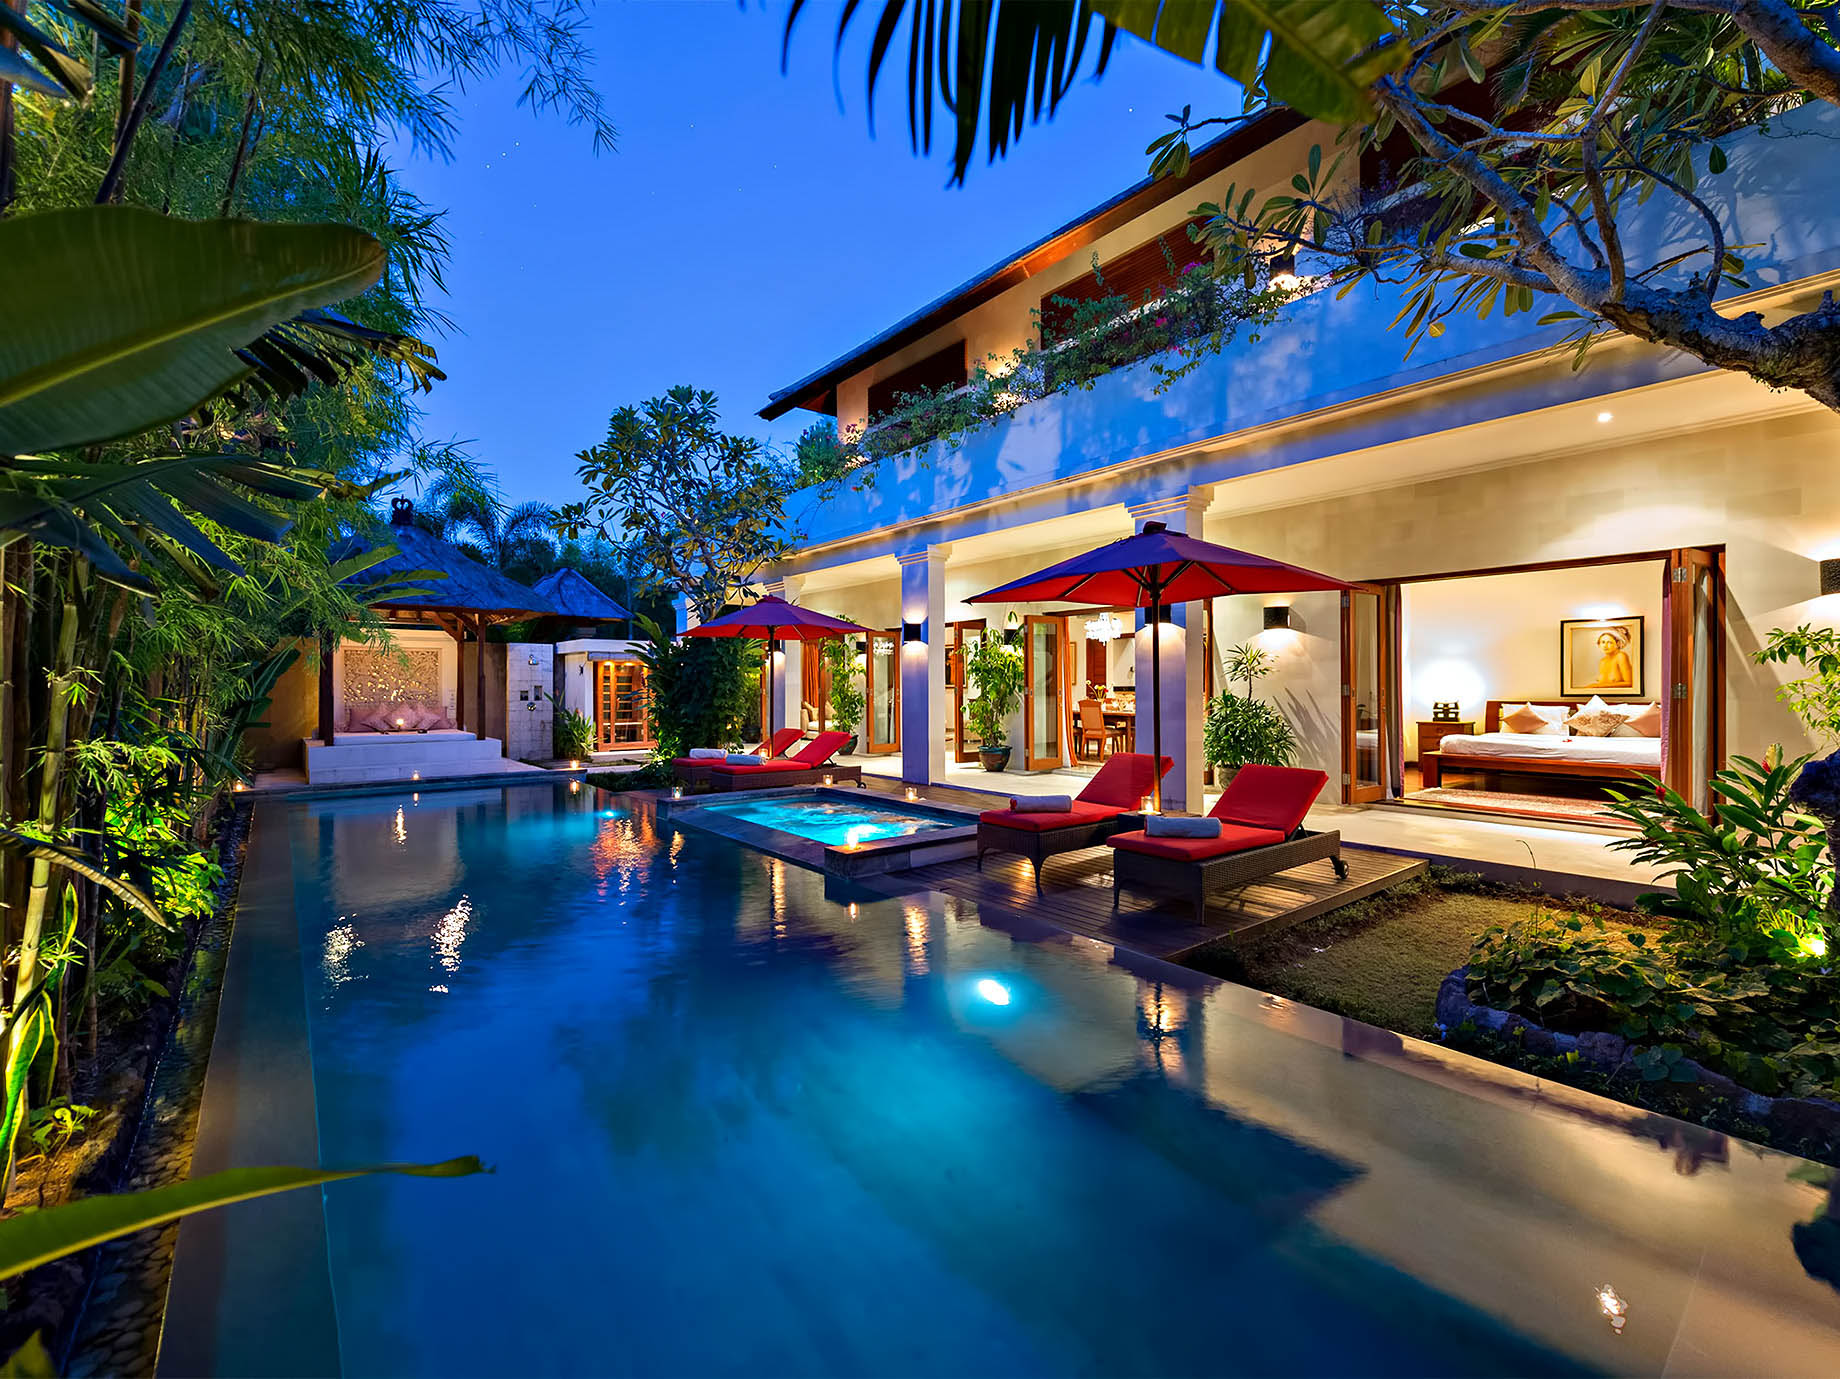 Book a villa to enjoy your own space on your own time - Bali, Indonesia